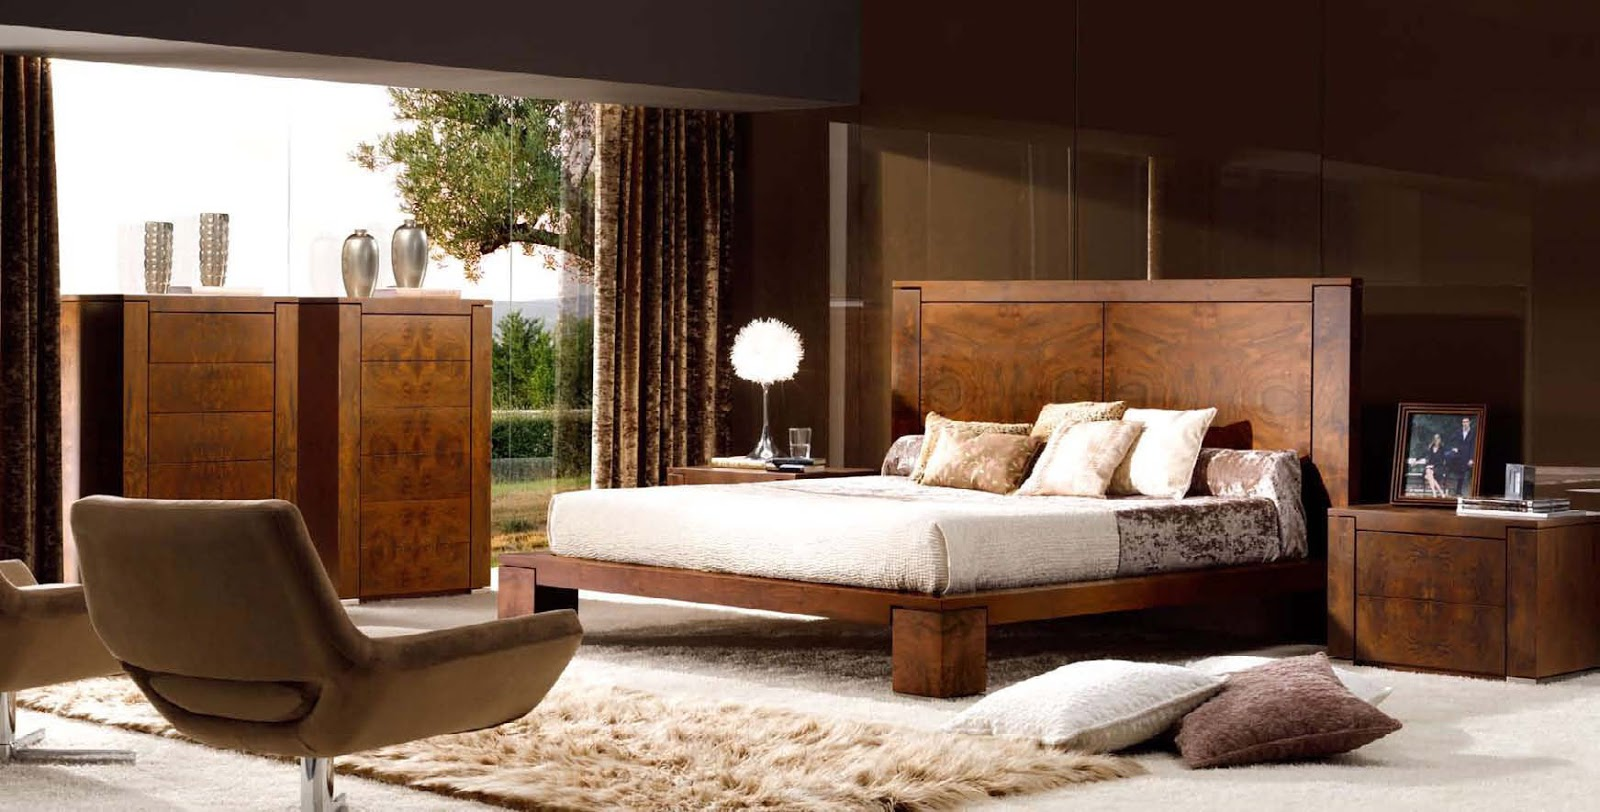 Pooshaa enterprises hyderabad interior designer for Modern wooden bedroom designs